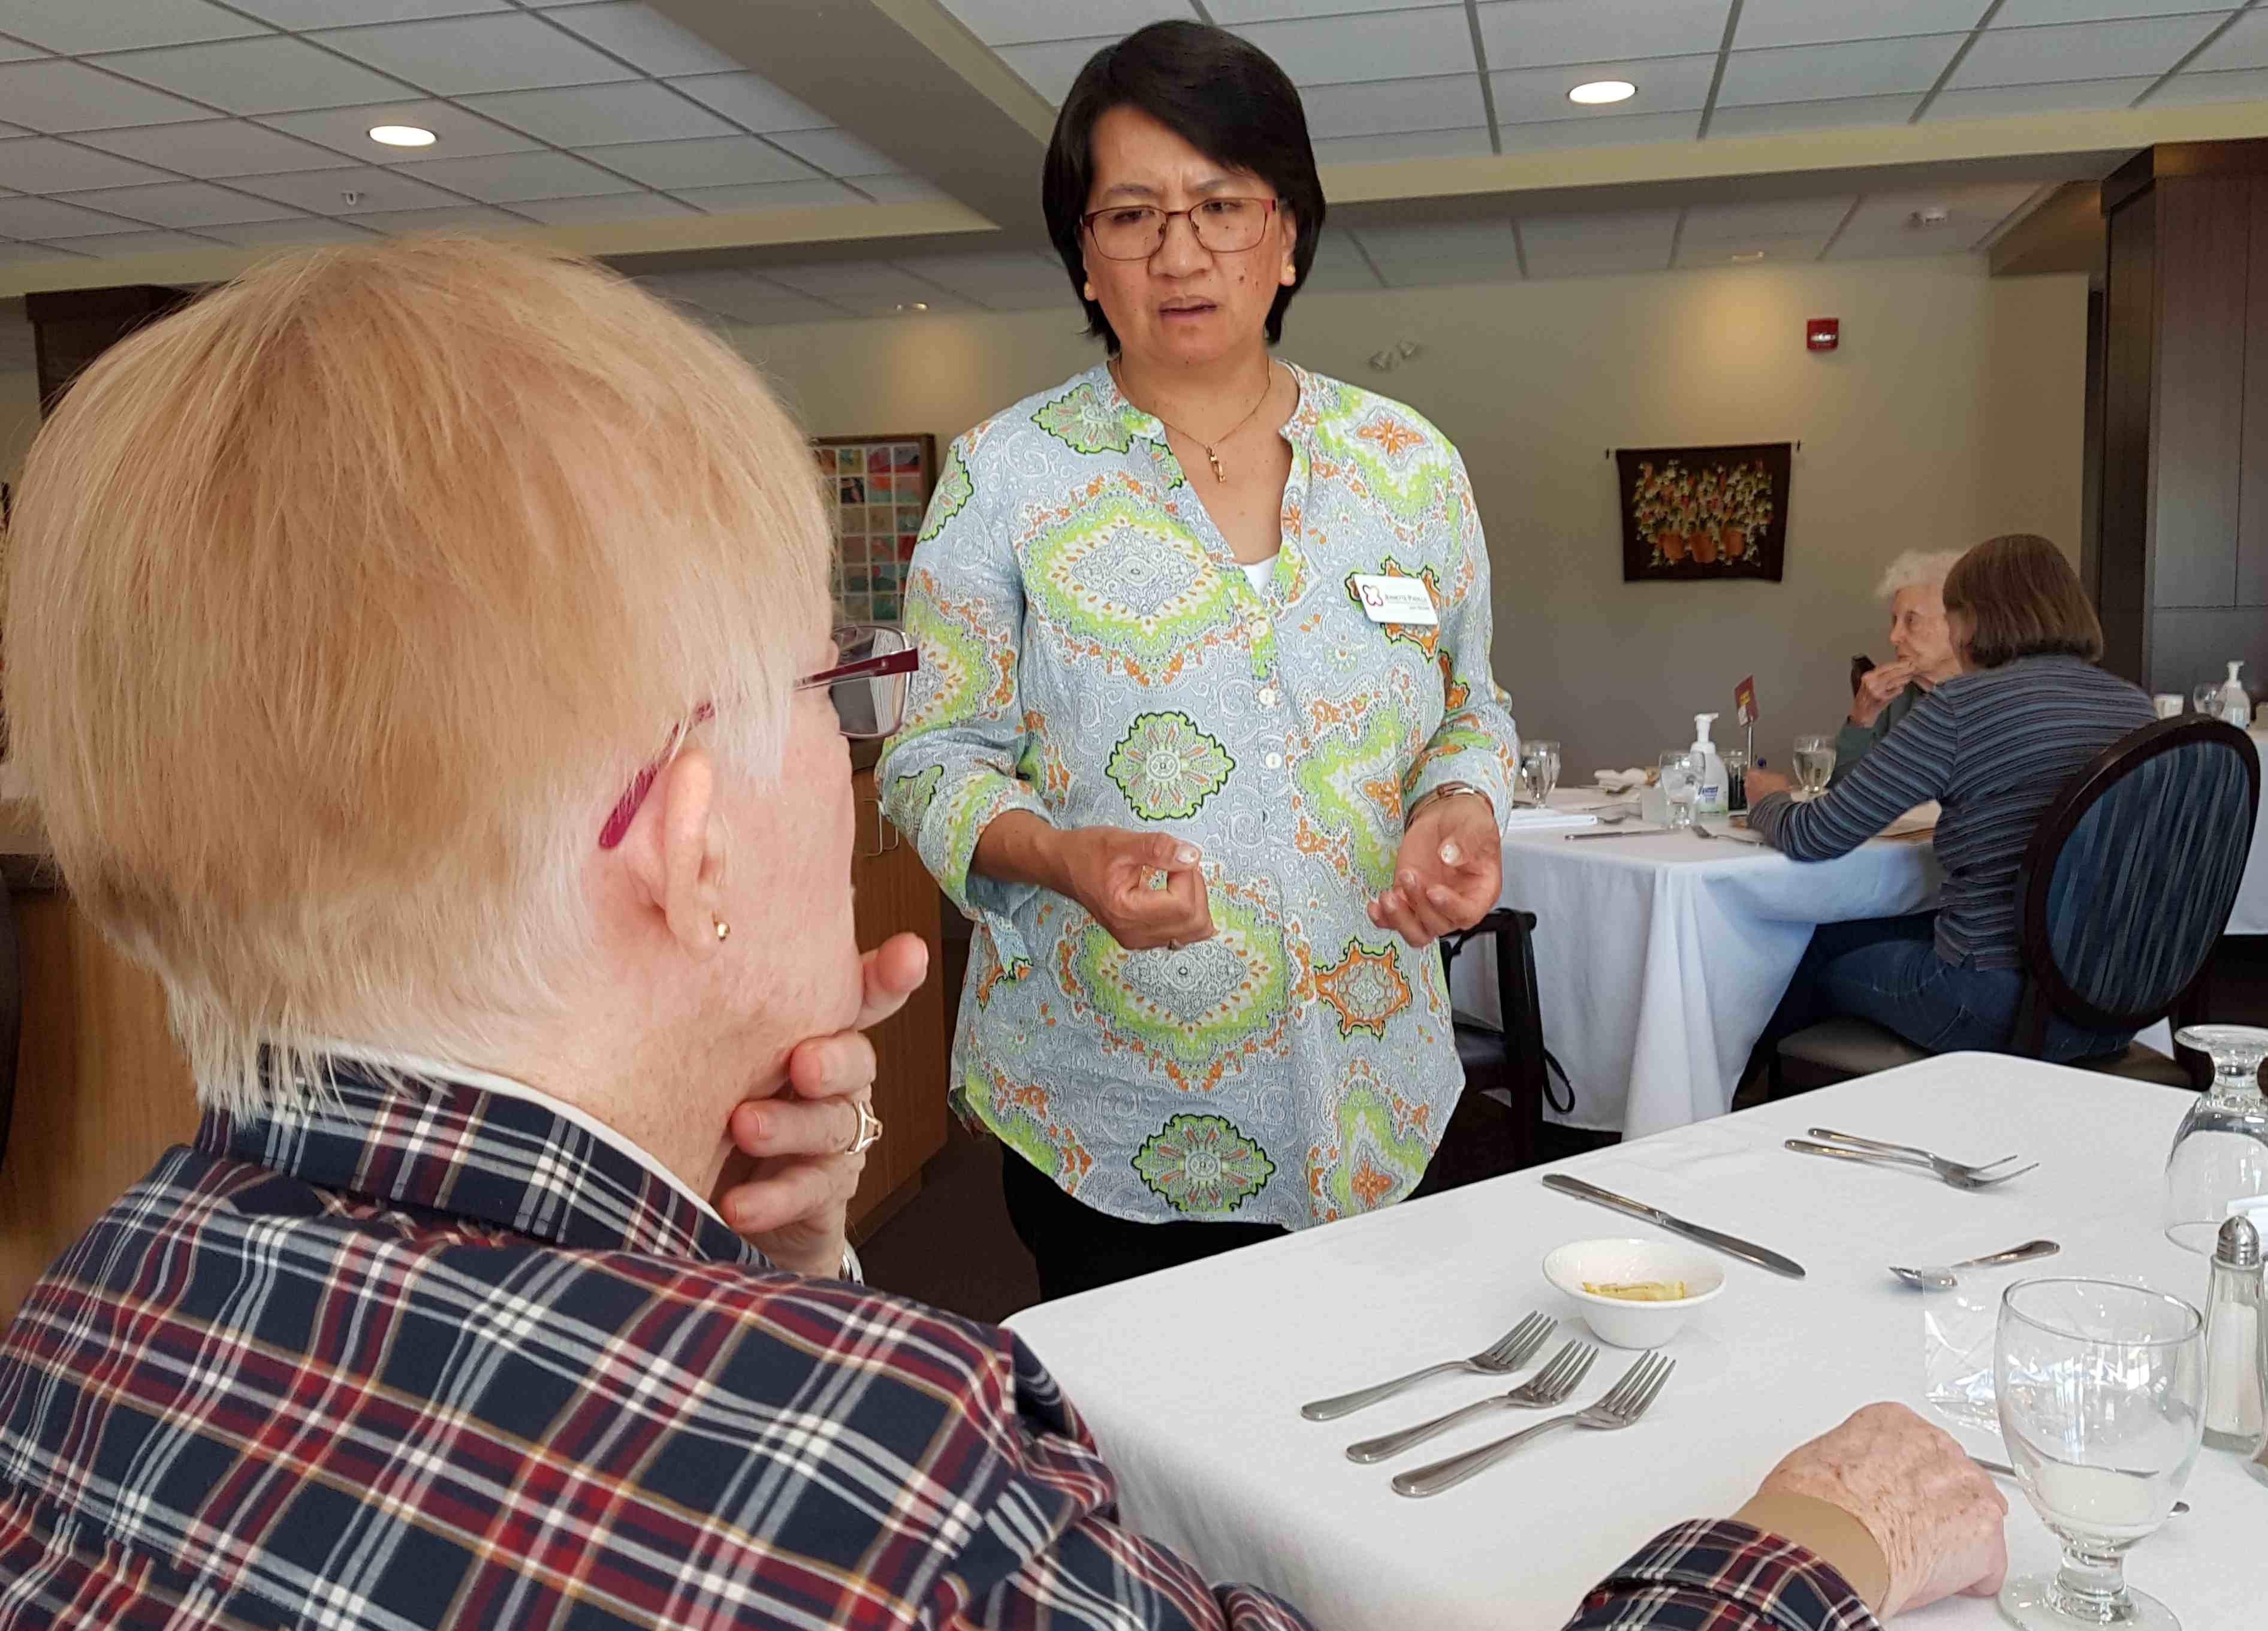 Jeanette Padilla discusses a special menu request from resident Diane Ness